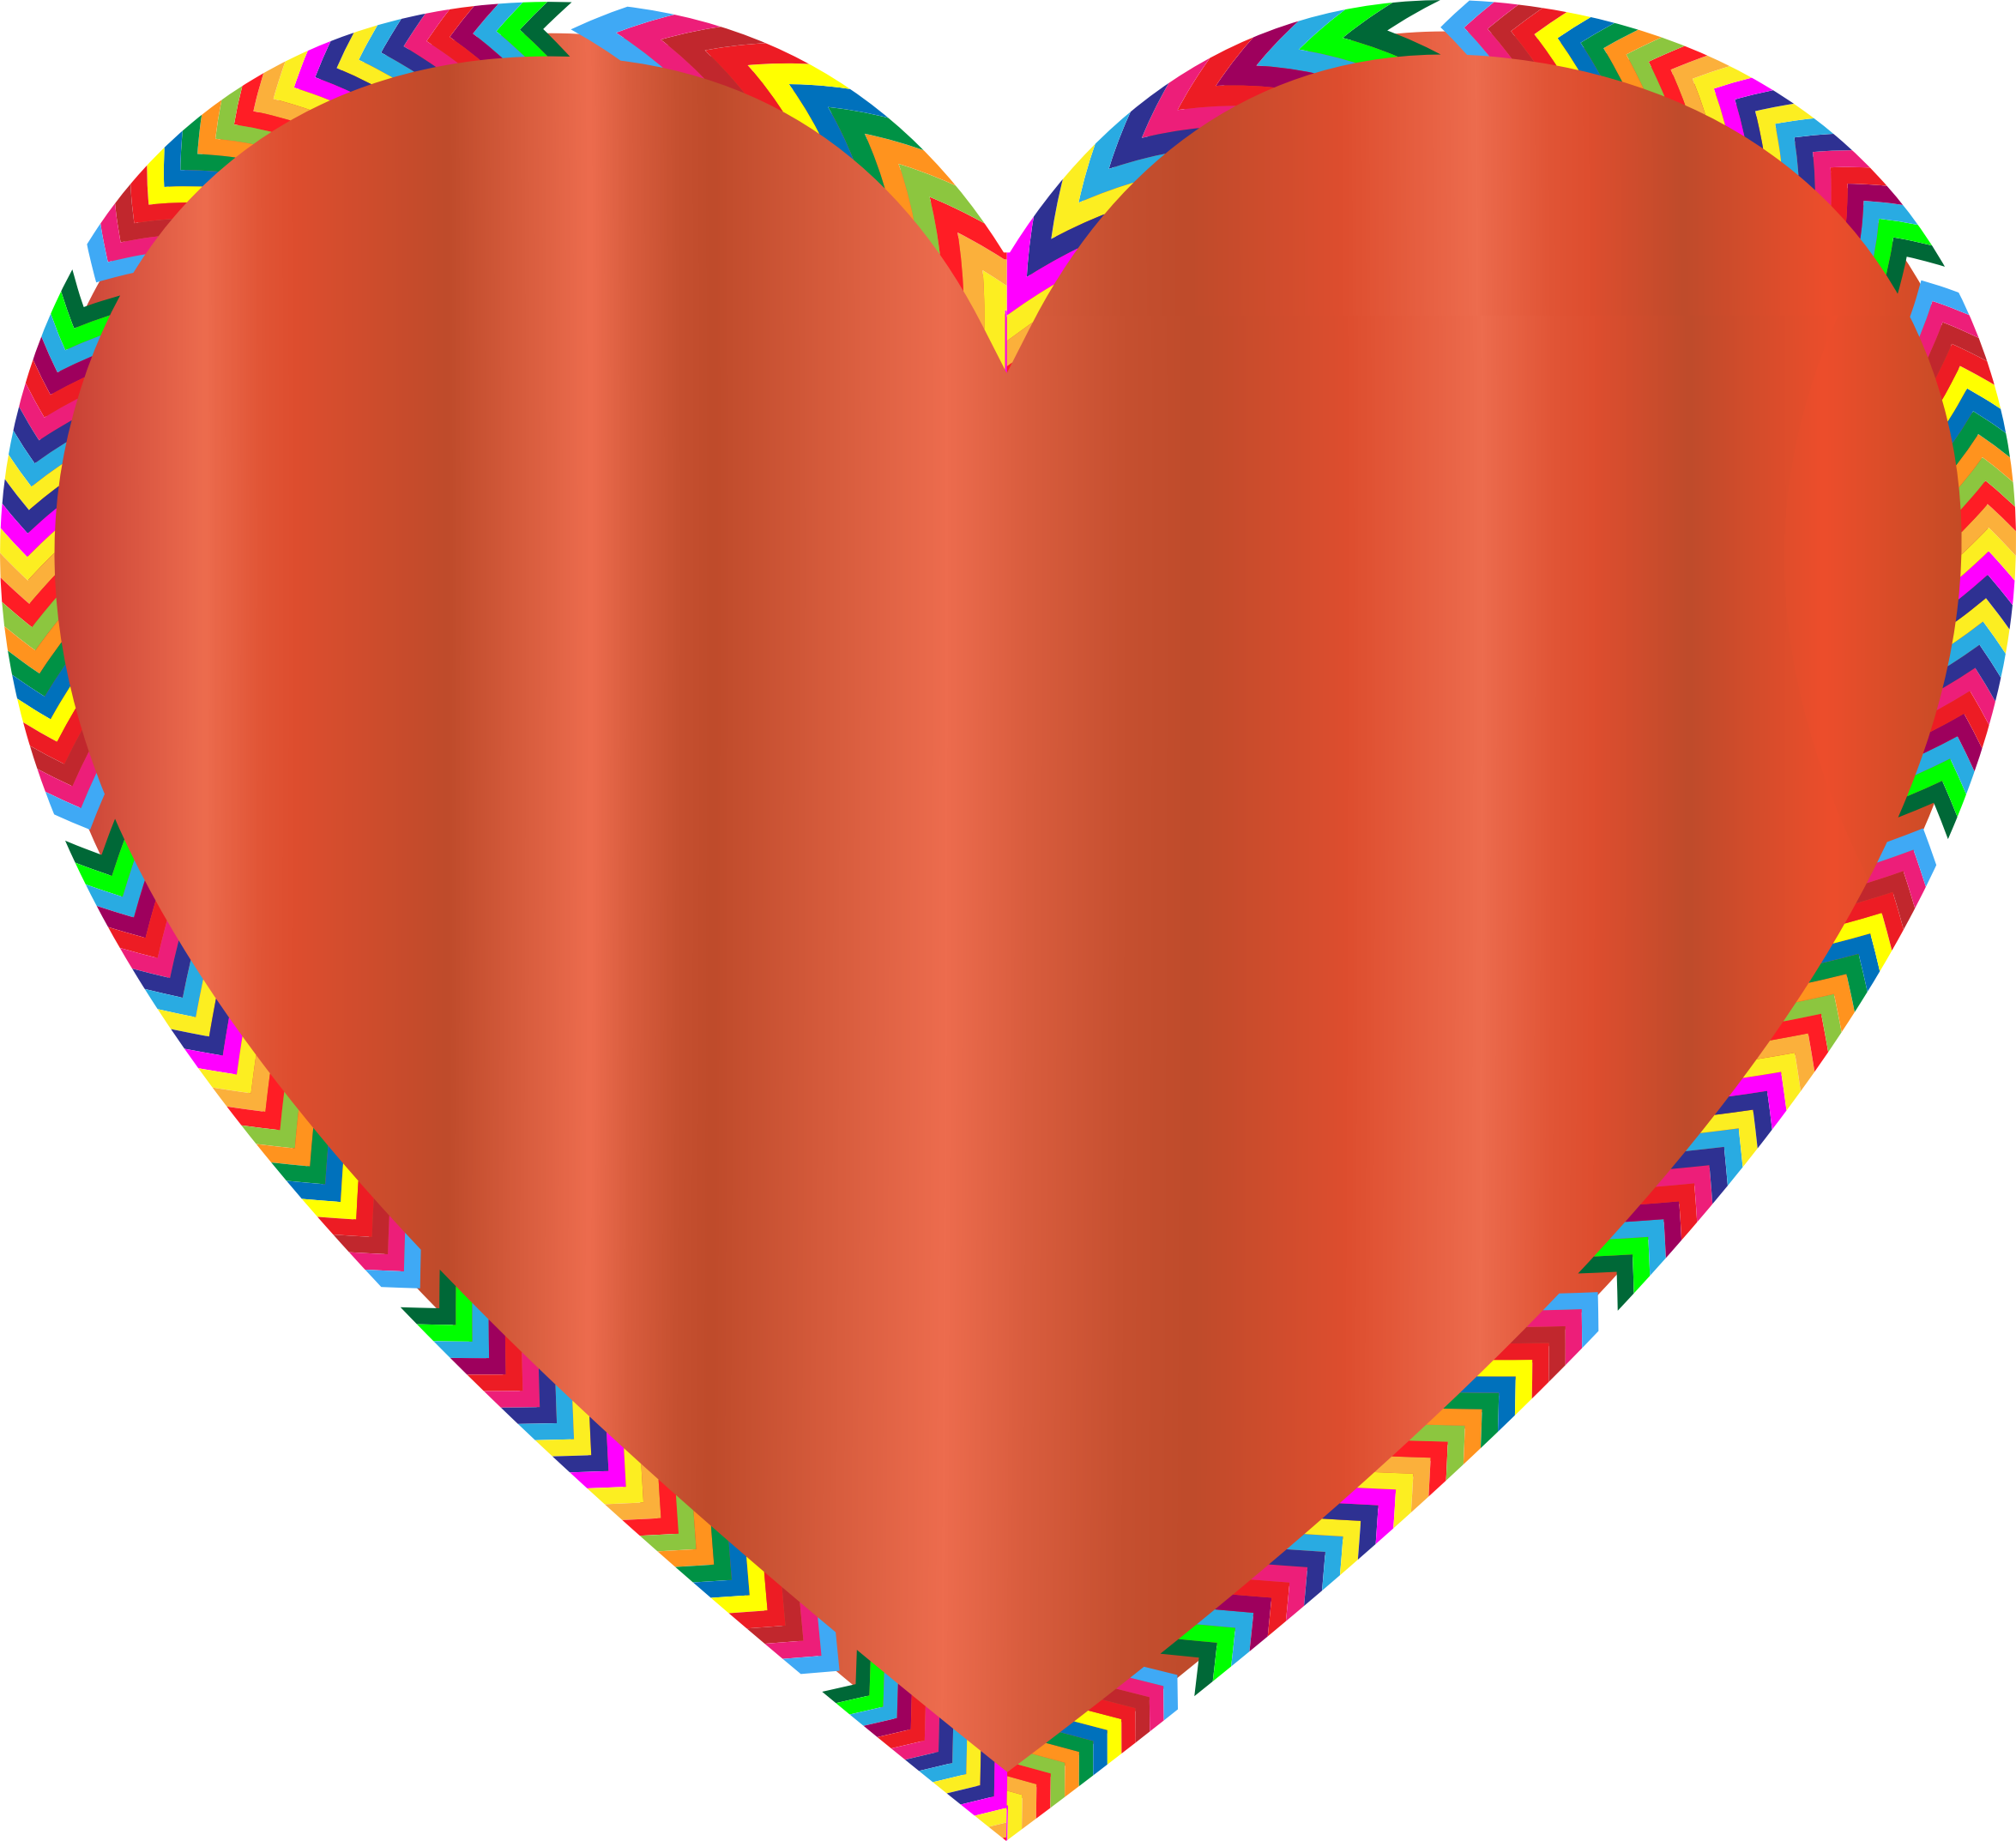 Multicolored Arrows Heart Filled 2 by GDJ